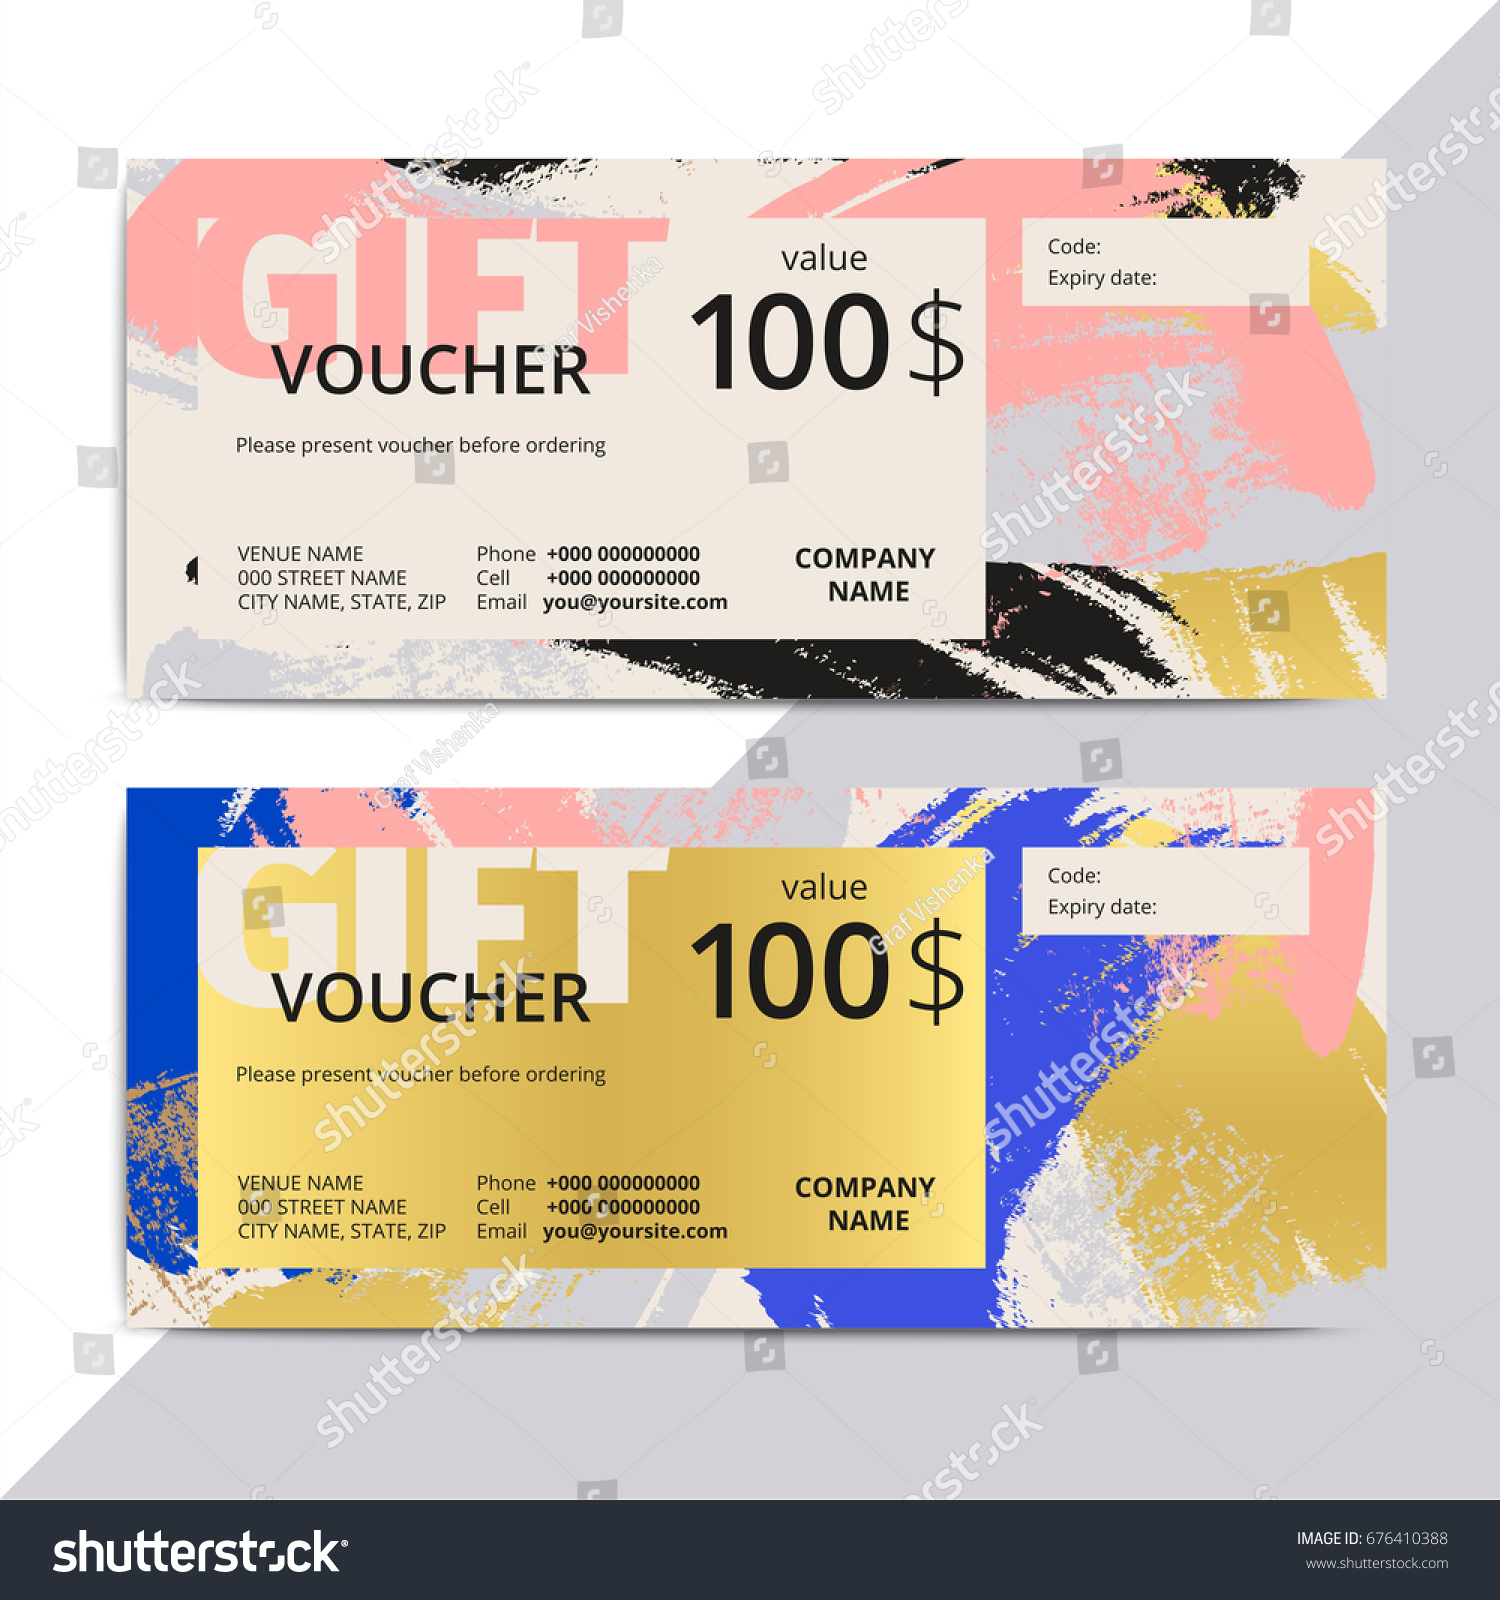 Trendy elegant gift voucher card templates stock vector 676410388 trendy elegant gift voucher card templates modern luxury discount coupon or certificate layout with abstract xflitez Gallery